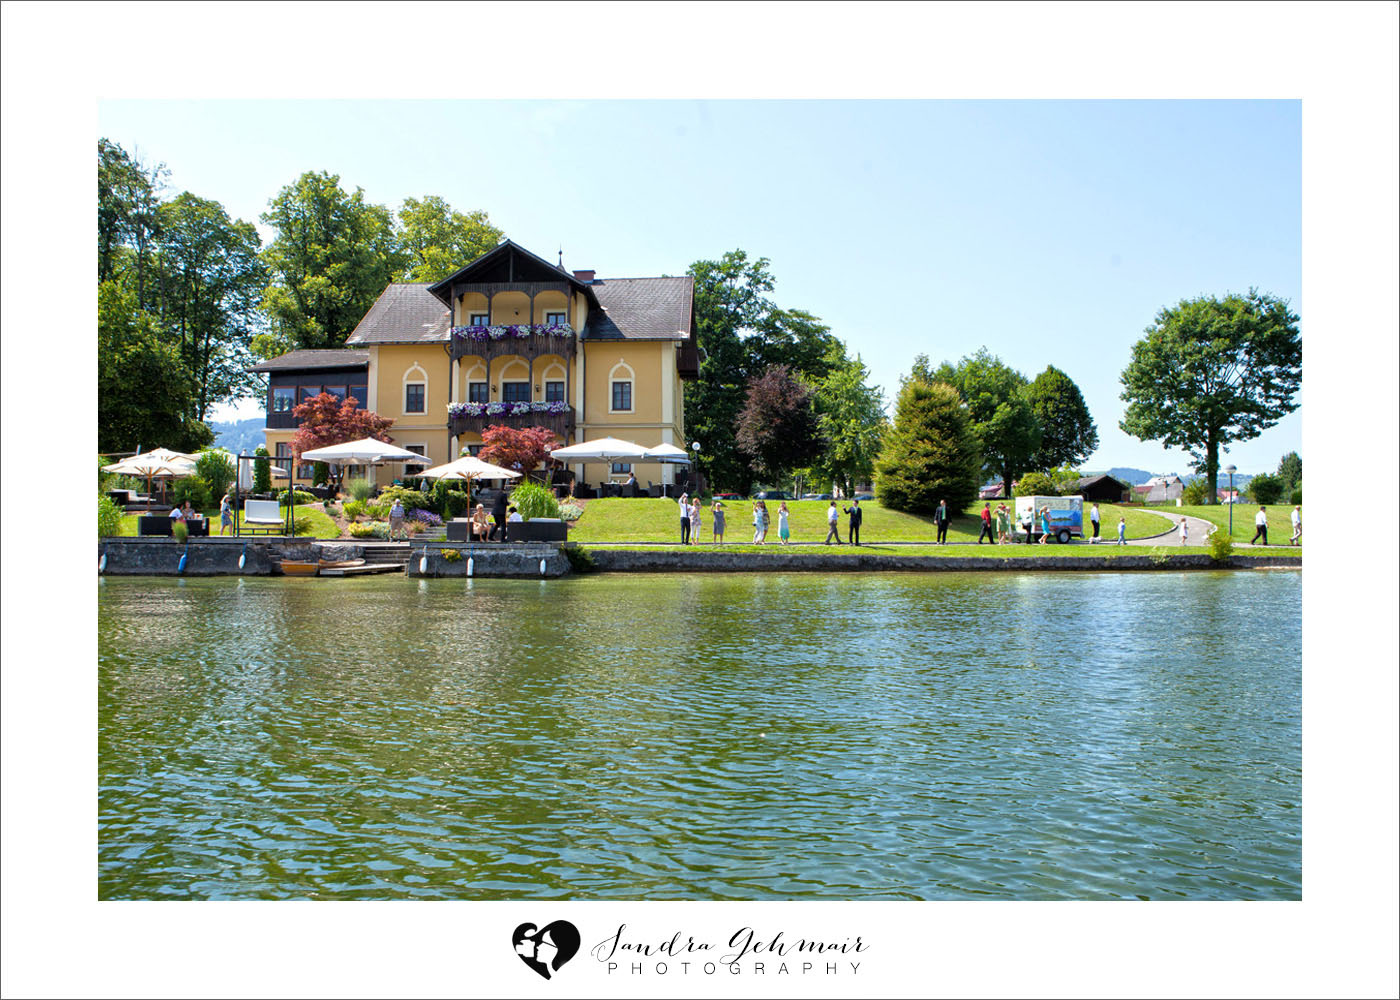 011_heiraten_am_see_spitzvilla_sandra_gehmair